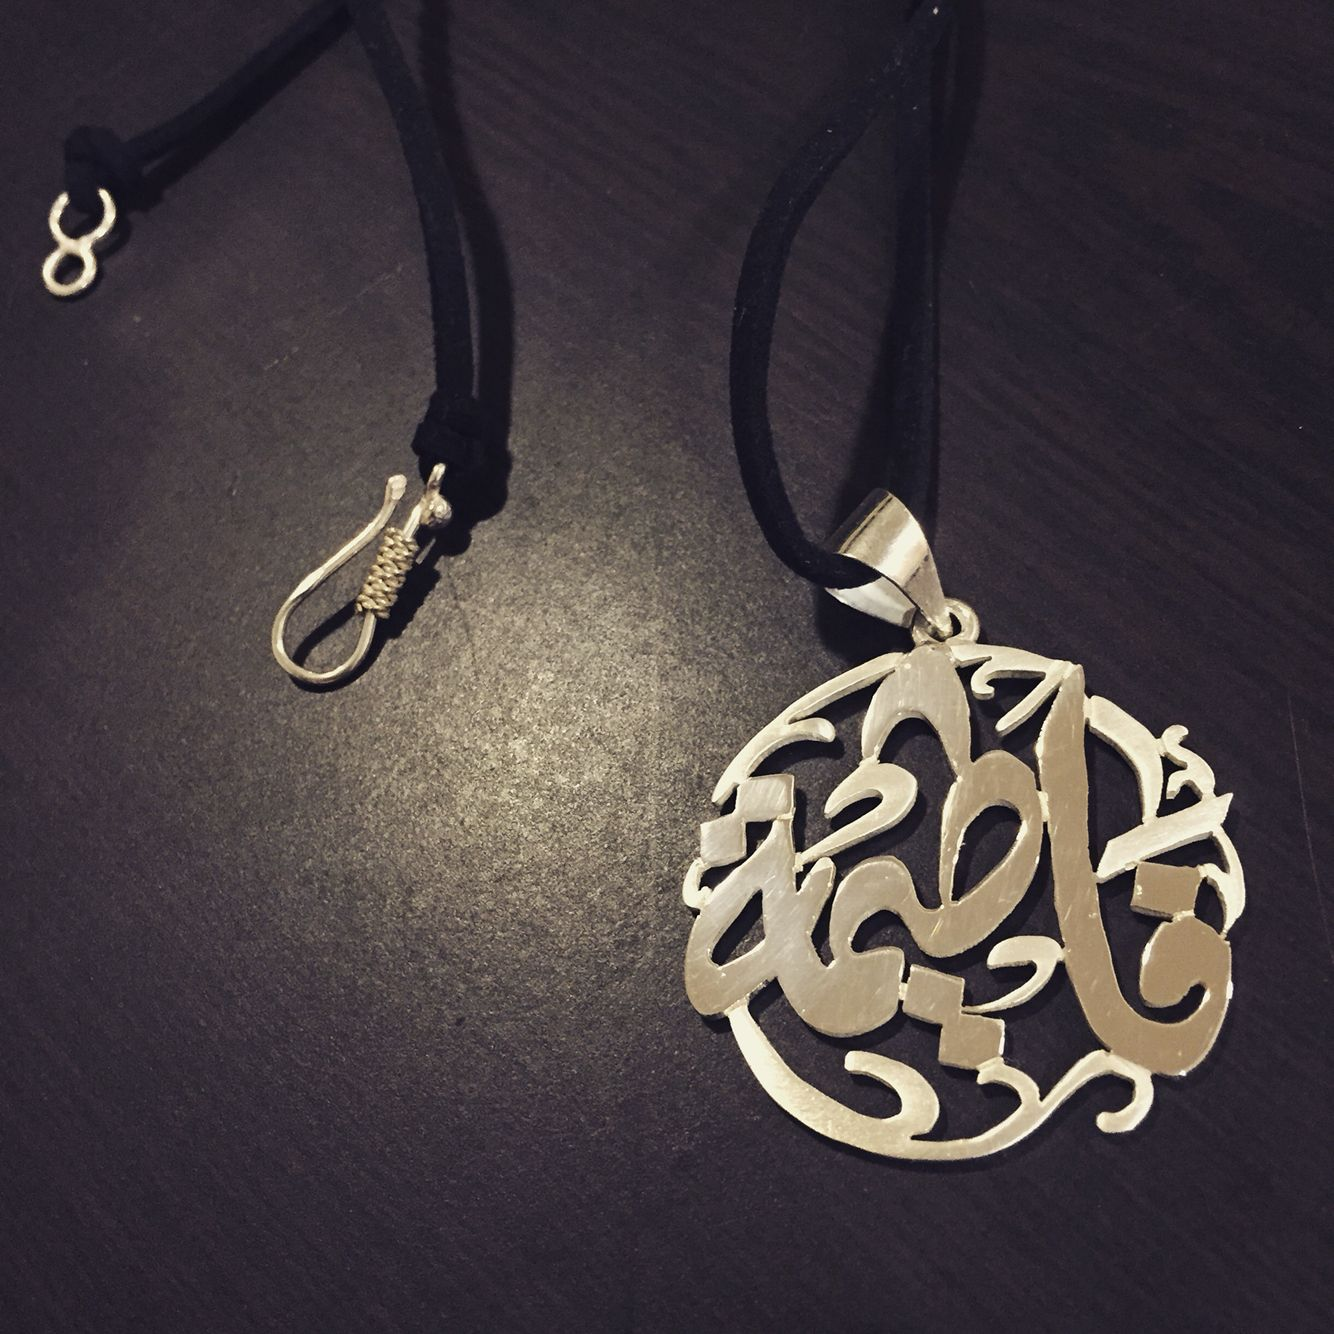 A Personalized Silver Pendant Made By Aya Sugita Jewelry It Has A Name In Arabic Calligraphy Follow Arabic Jewelry Silver Jewelry Design Clean Gold Jewelry